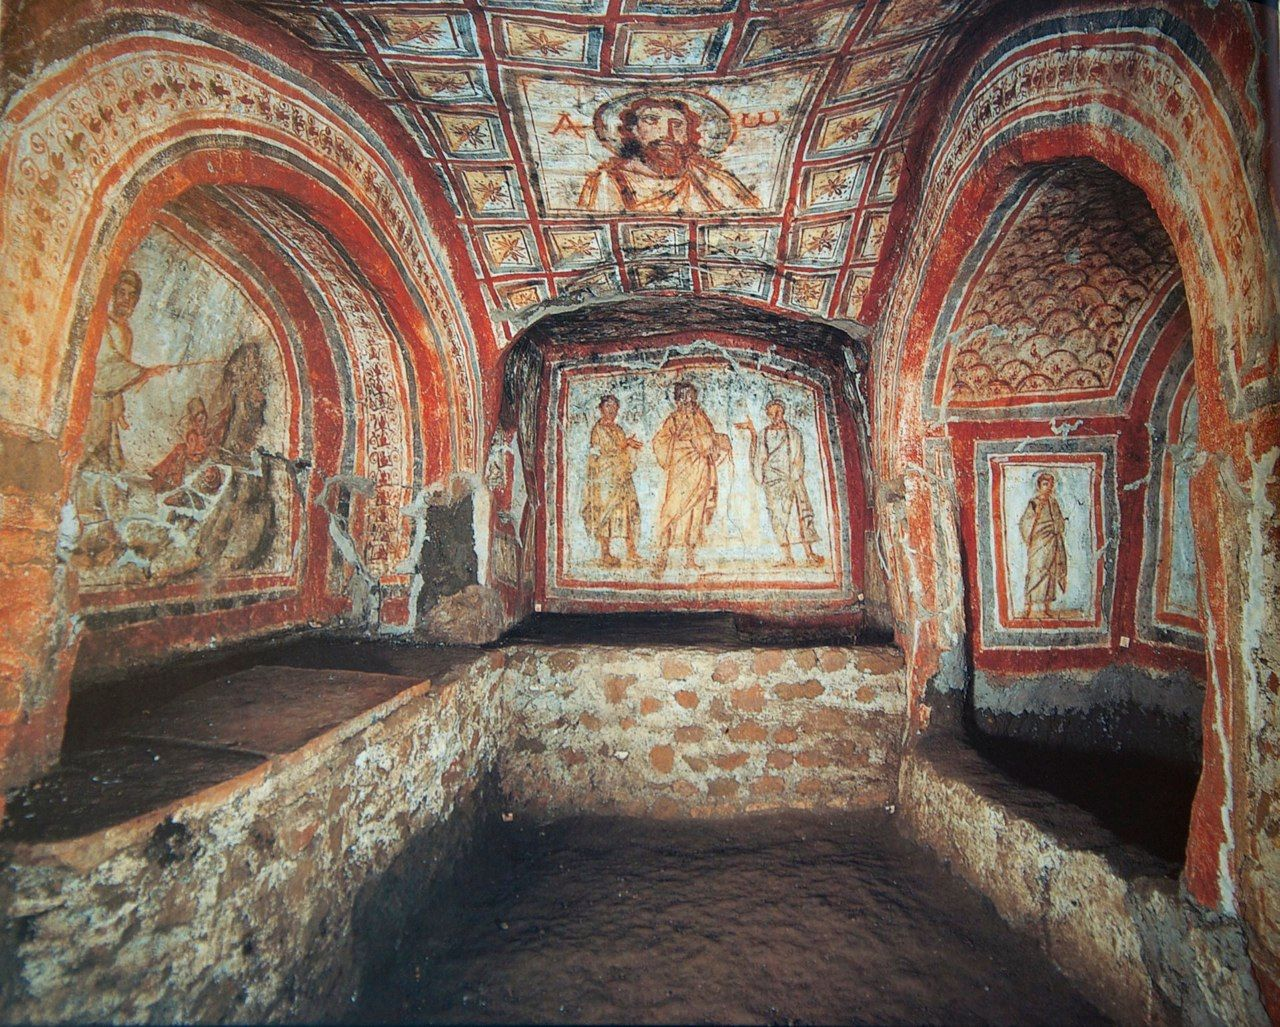 catacombs - early Christian iconography | The glorious ...